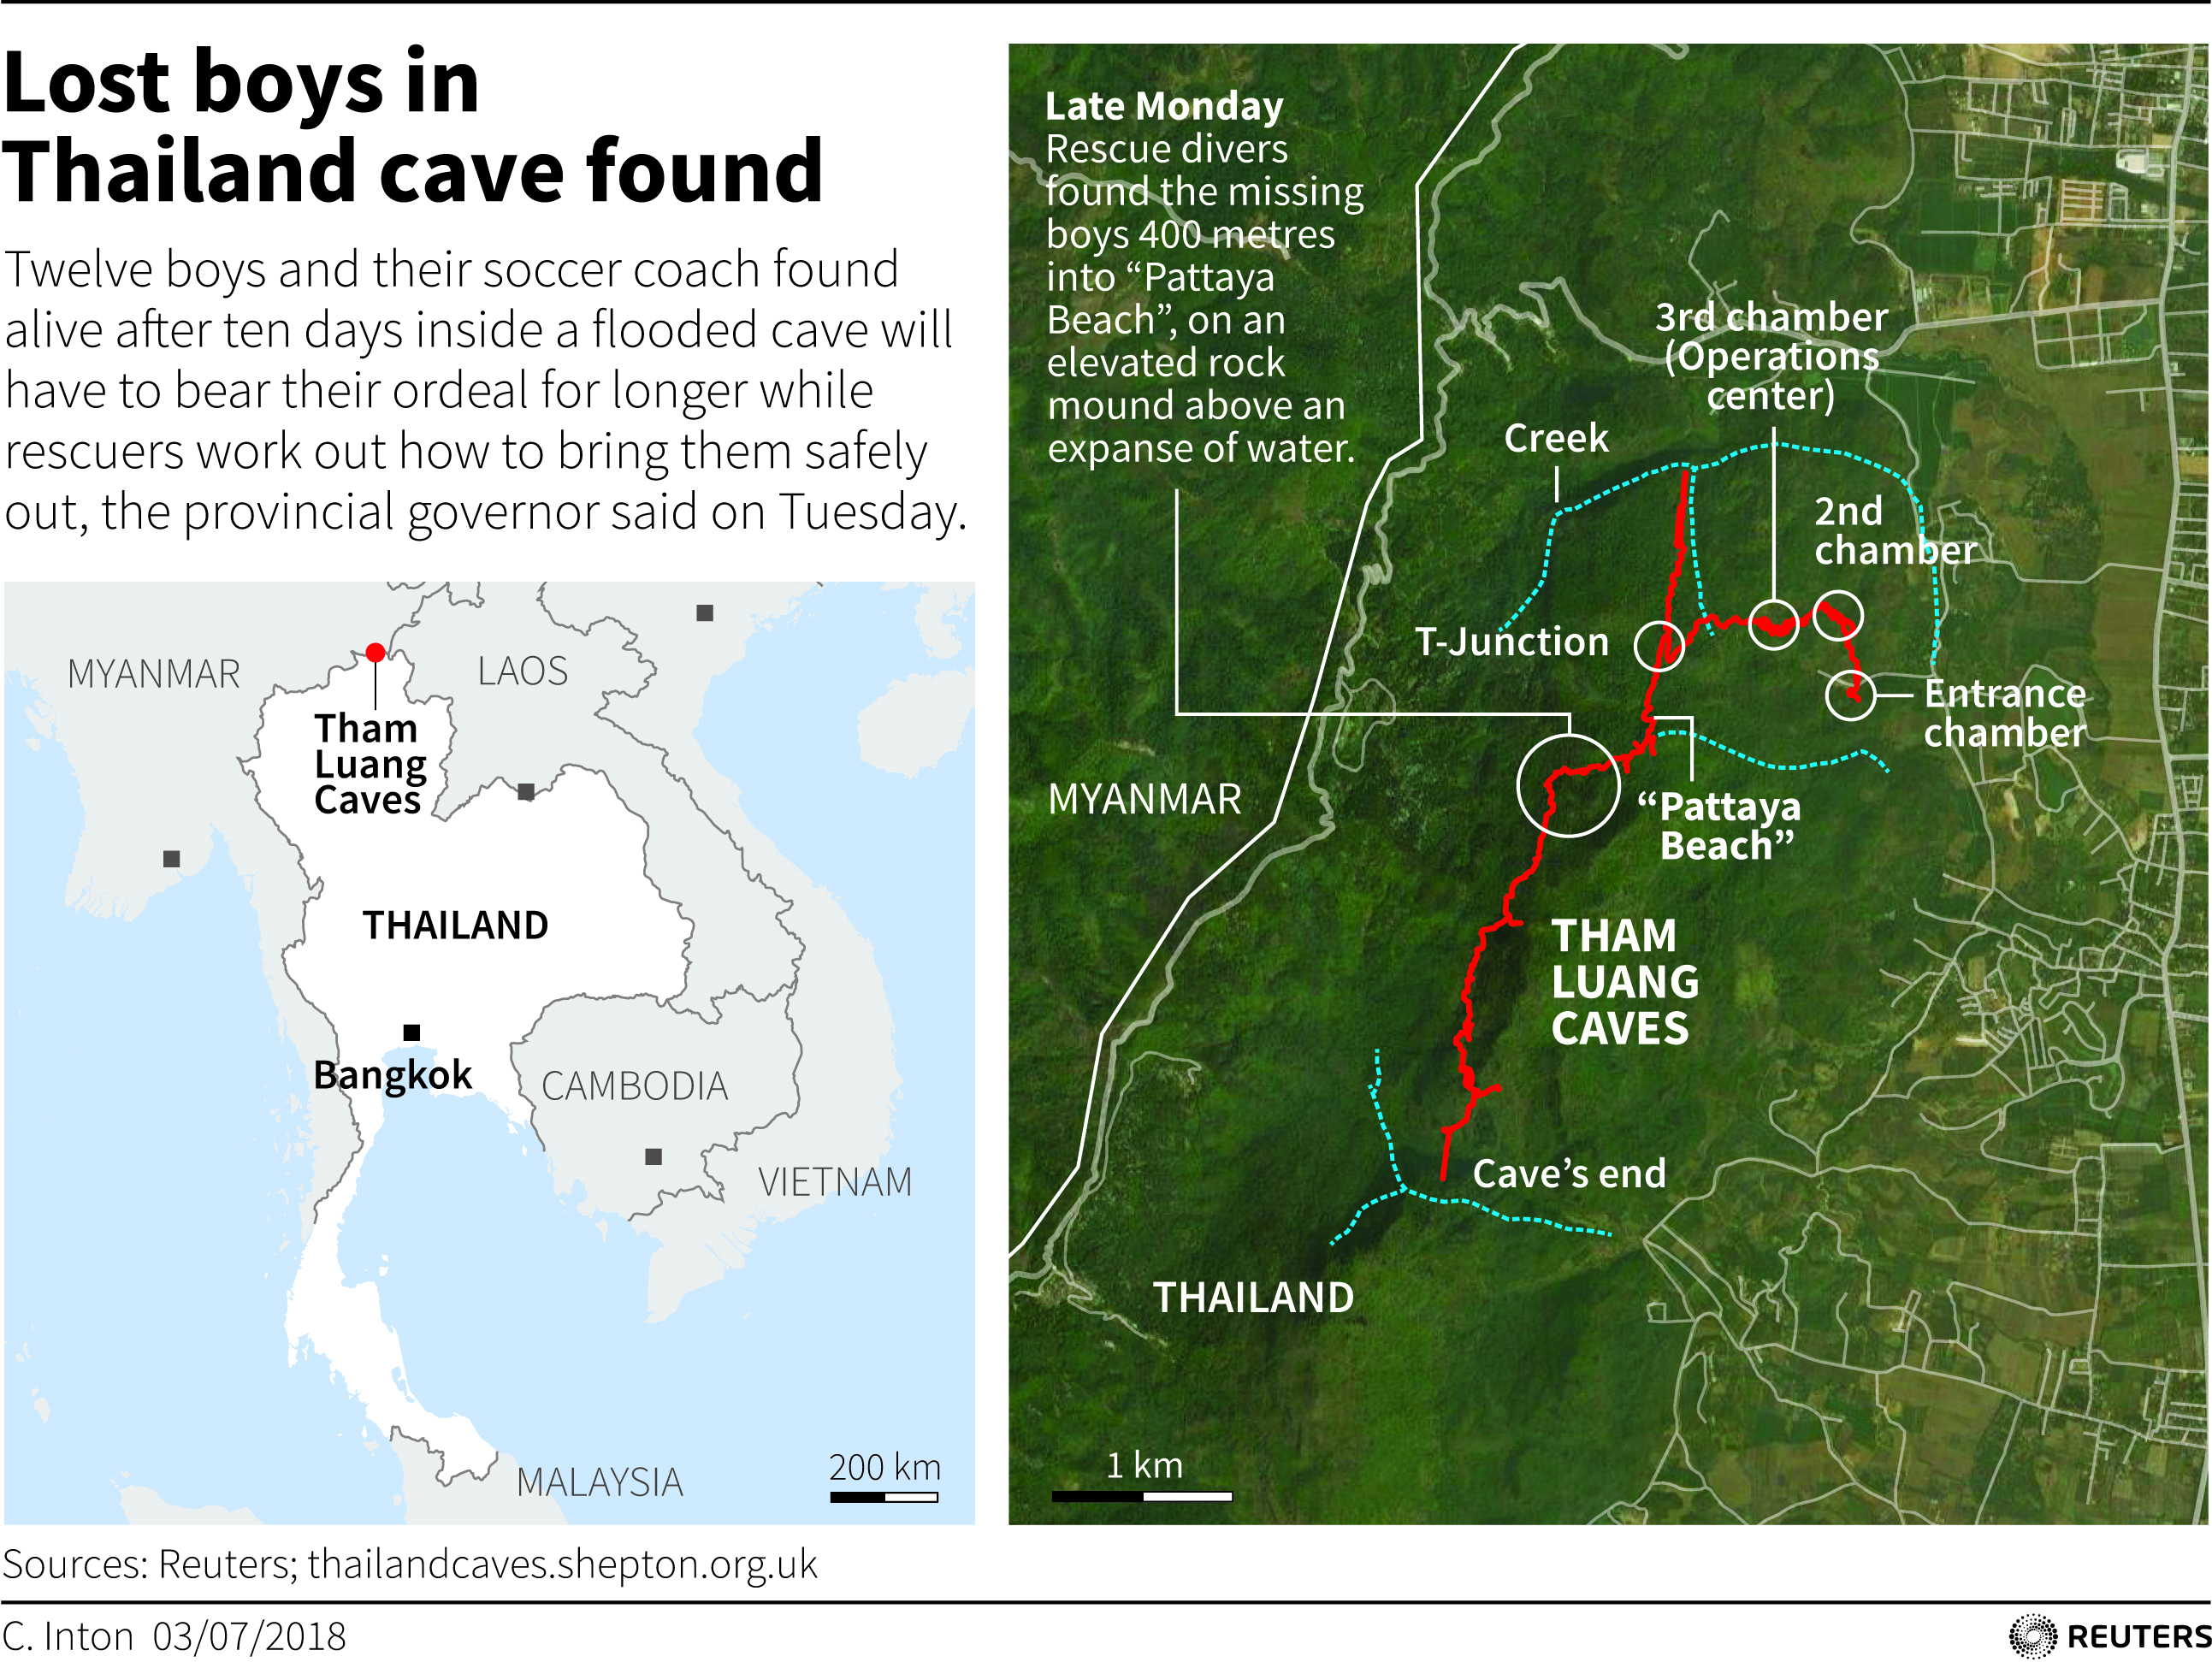 3 ways rescuers could free youth soccer team from Thailand cave ...